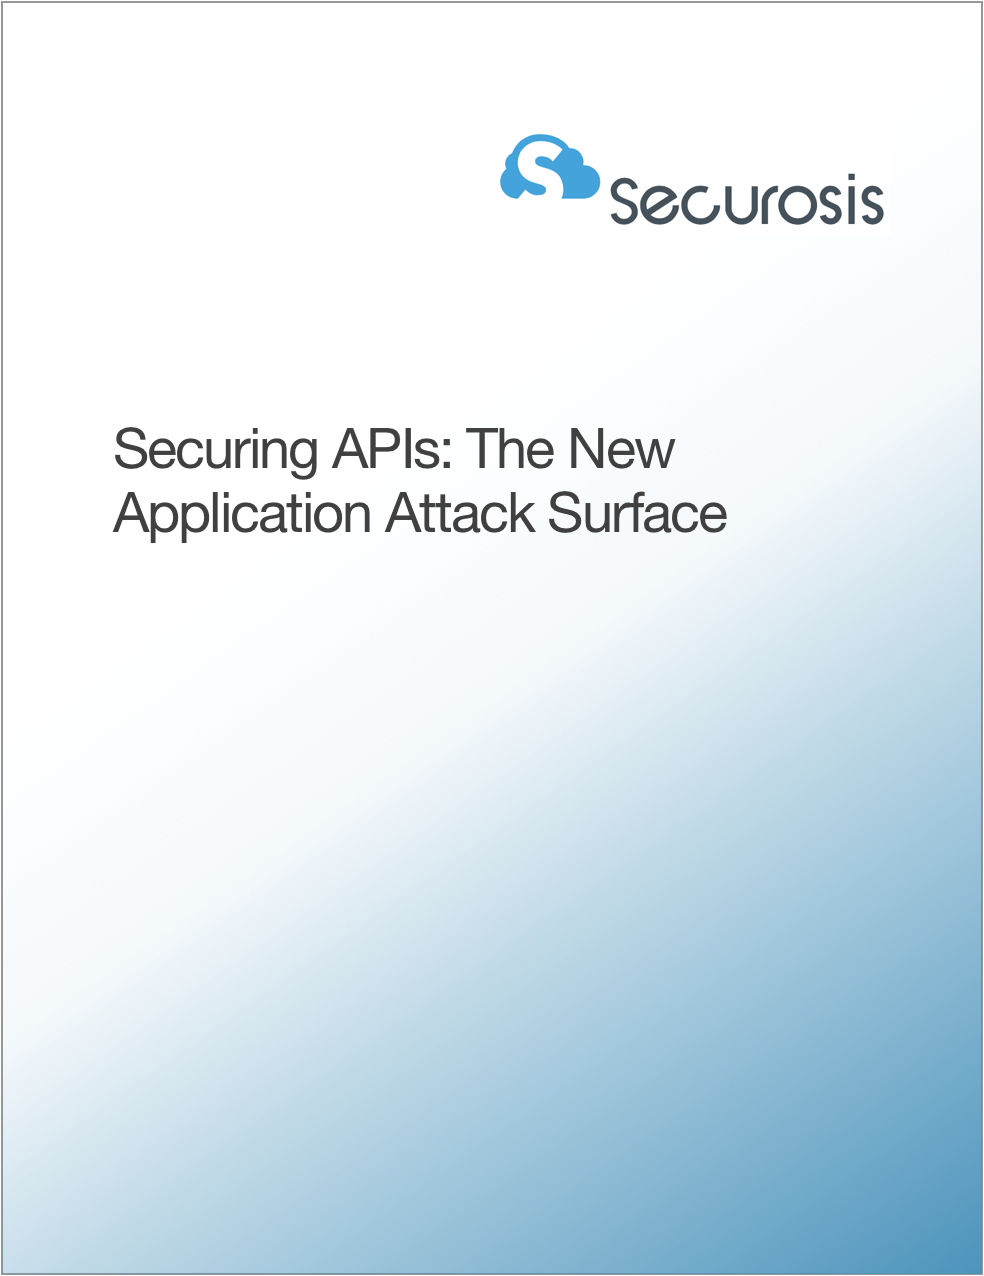 Securing APIs: The New Application Attack Surface